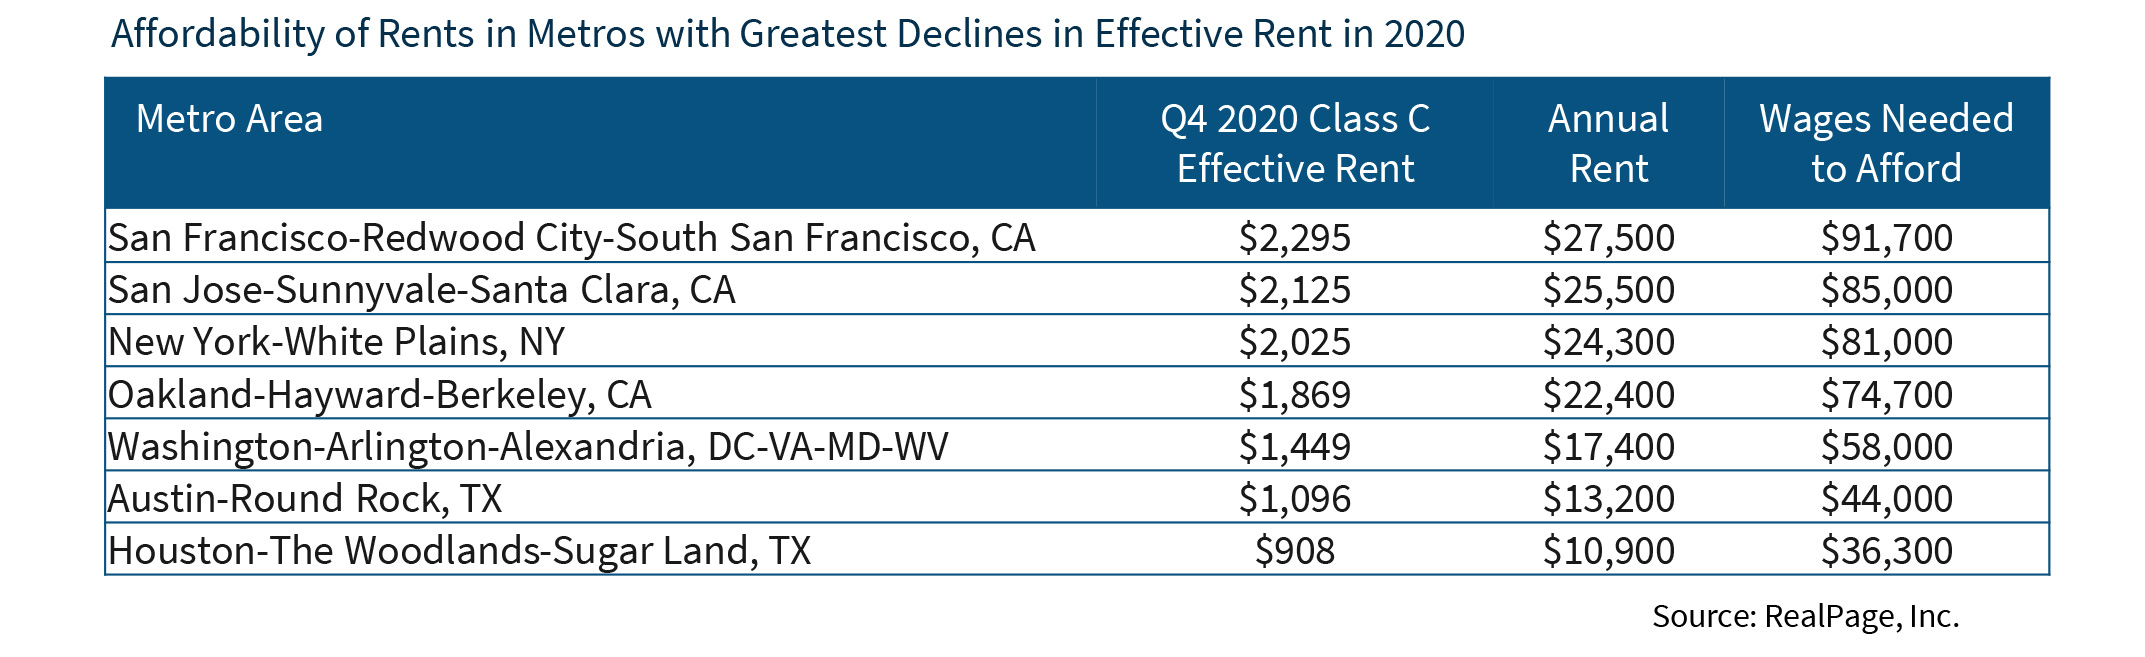 Affordability of Rents in Metros with Greatest Declines in Effective Rent in 2020